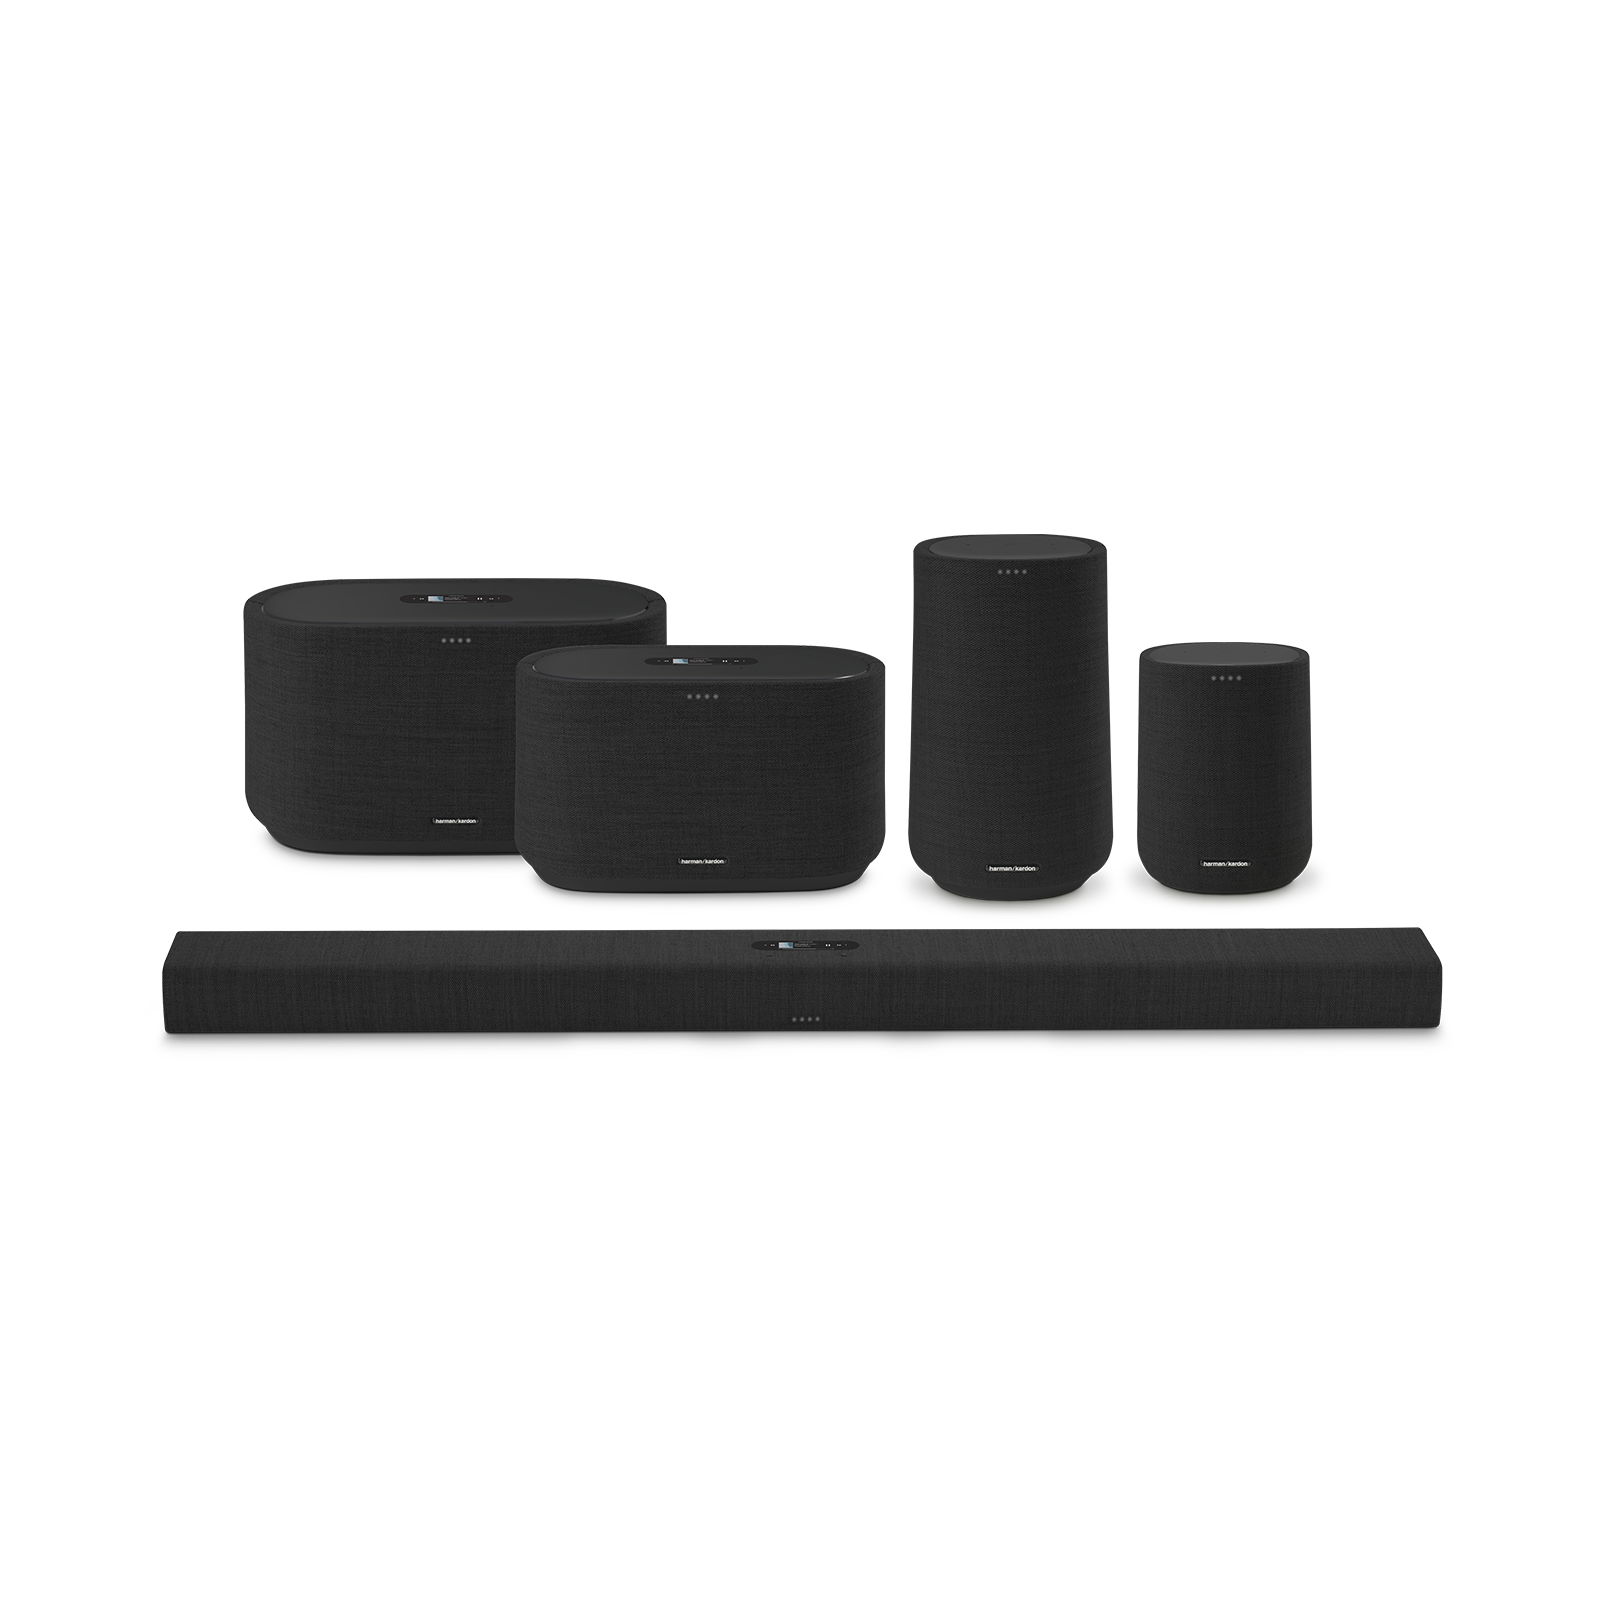 Harman Kardon Citation 300 - Black - The medium-size smart home speaker with award winning design - Detailshot 5